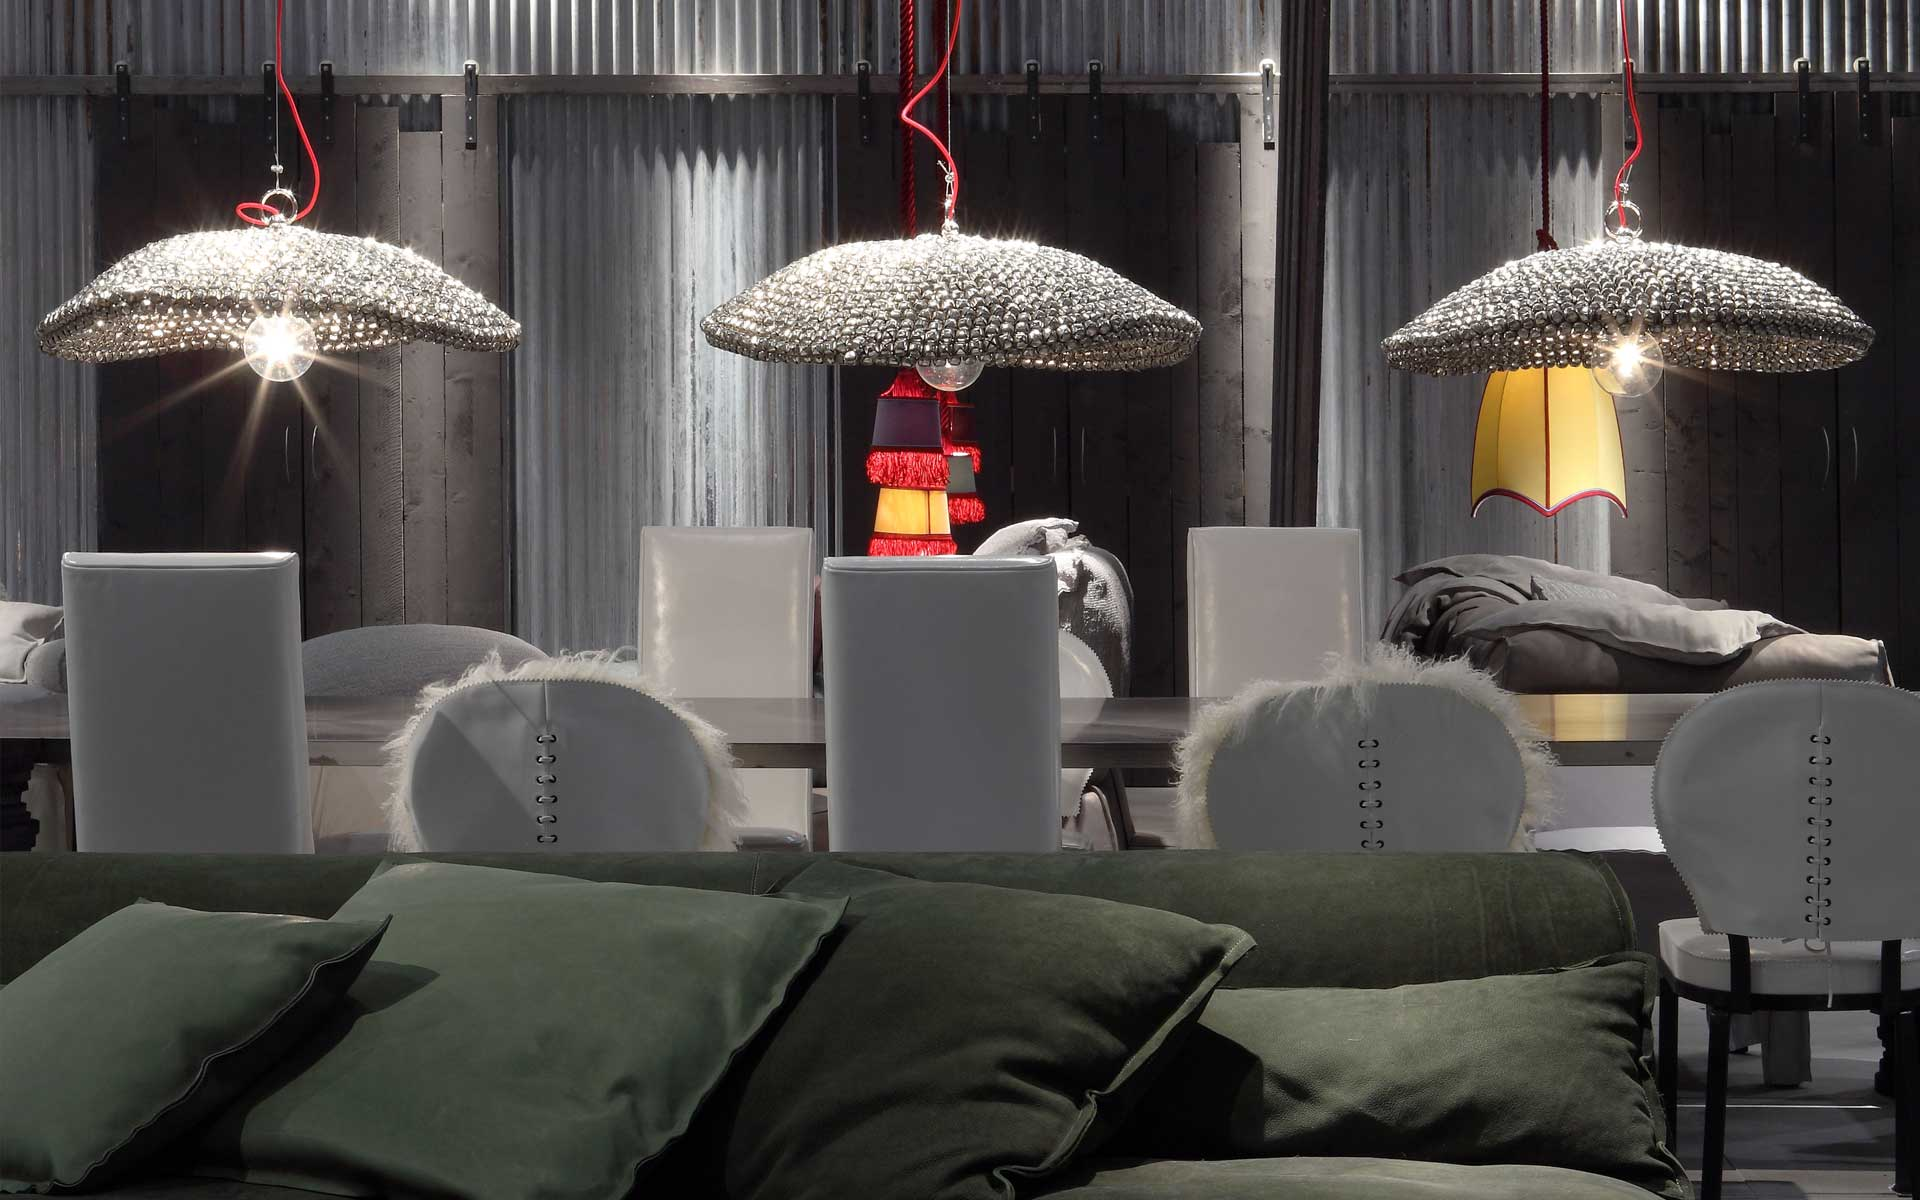 Fashionable Lamps for your house